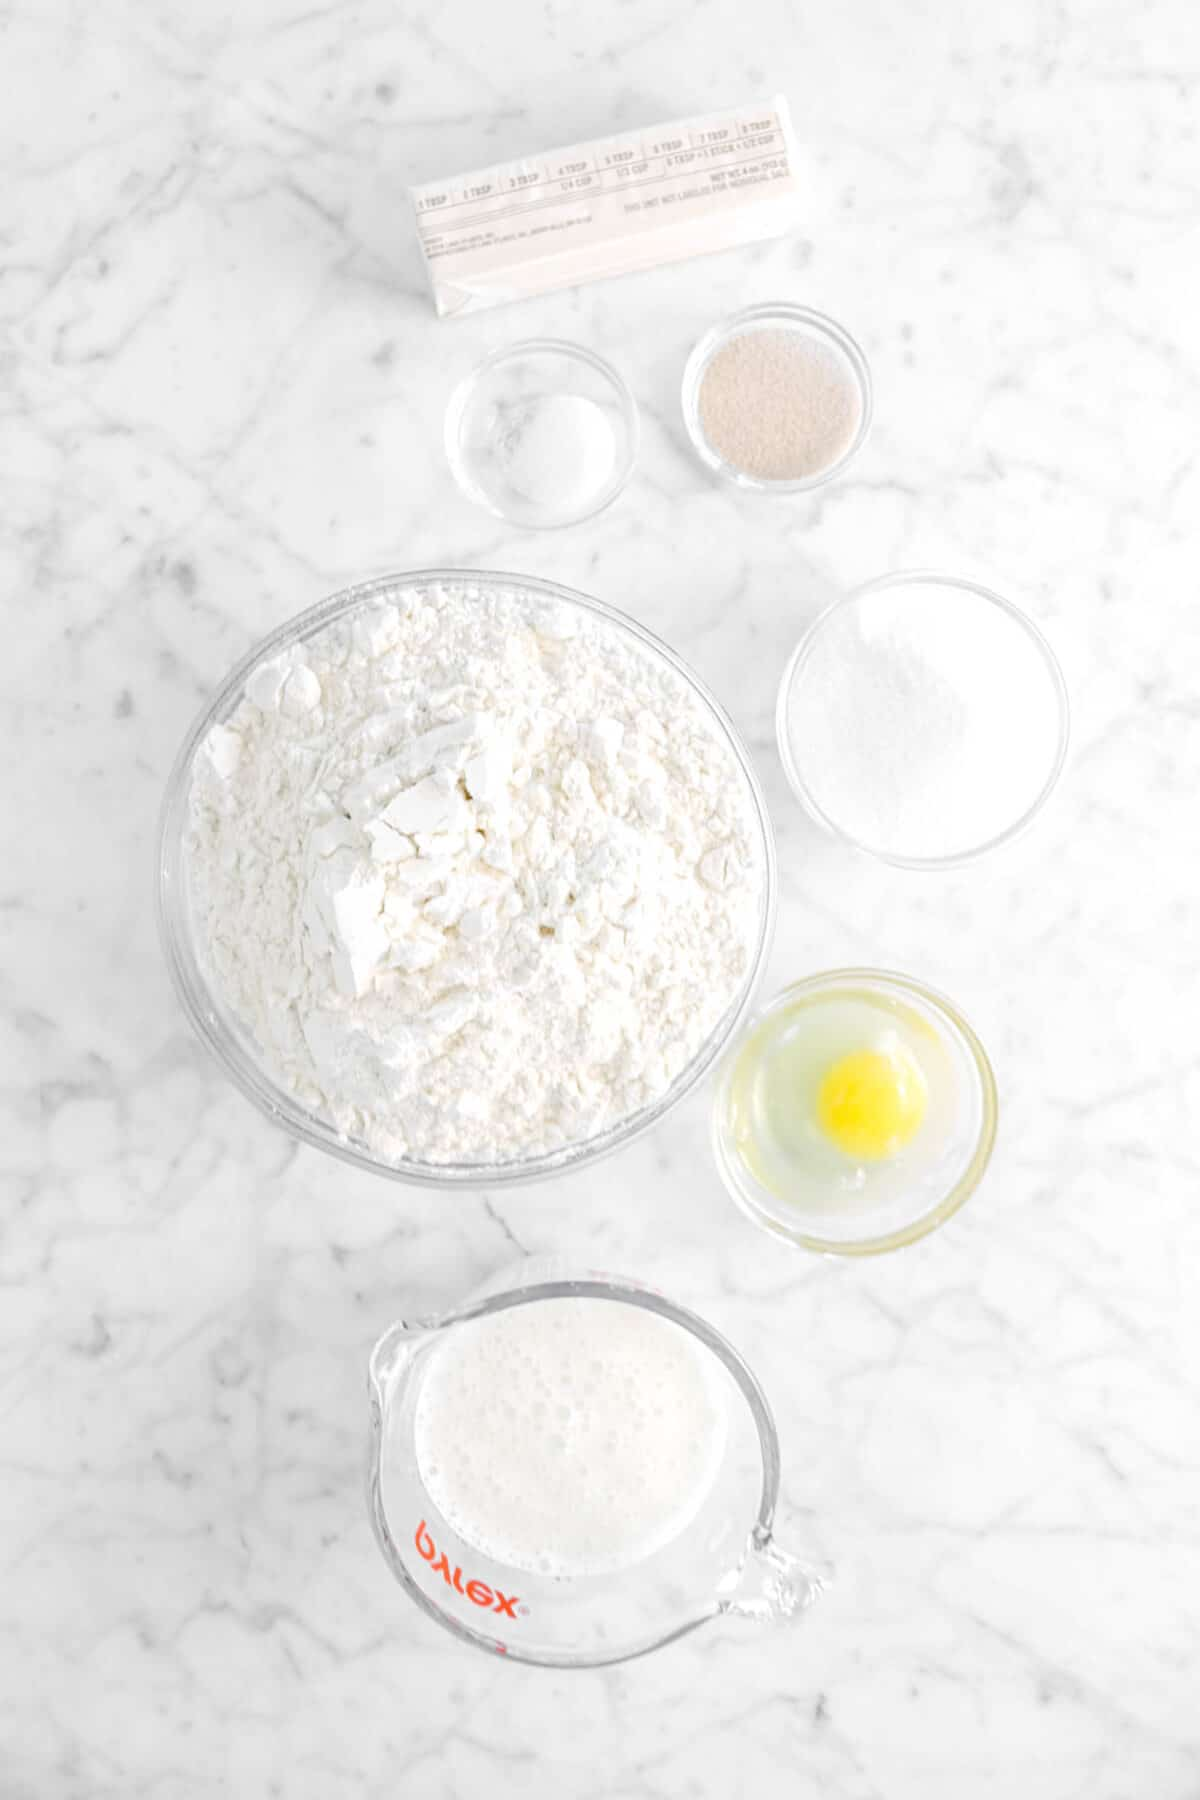 butter, salt, yeast, flour, sugar, egg, and milk on marble counter